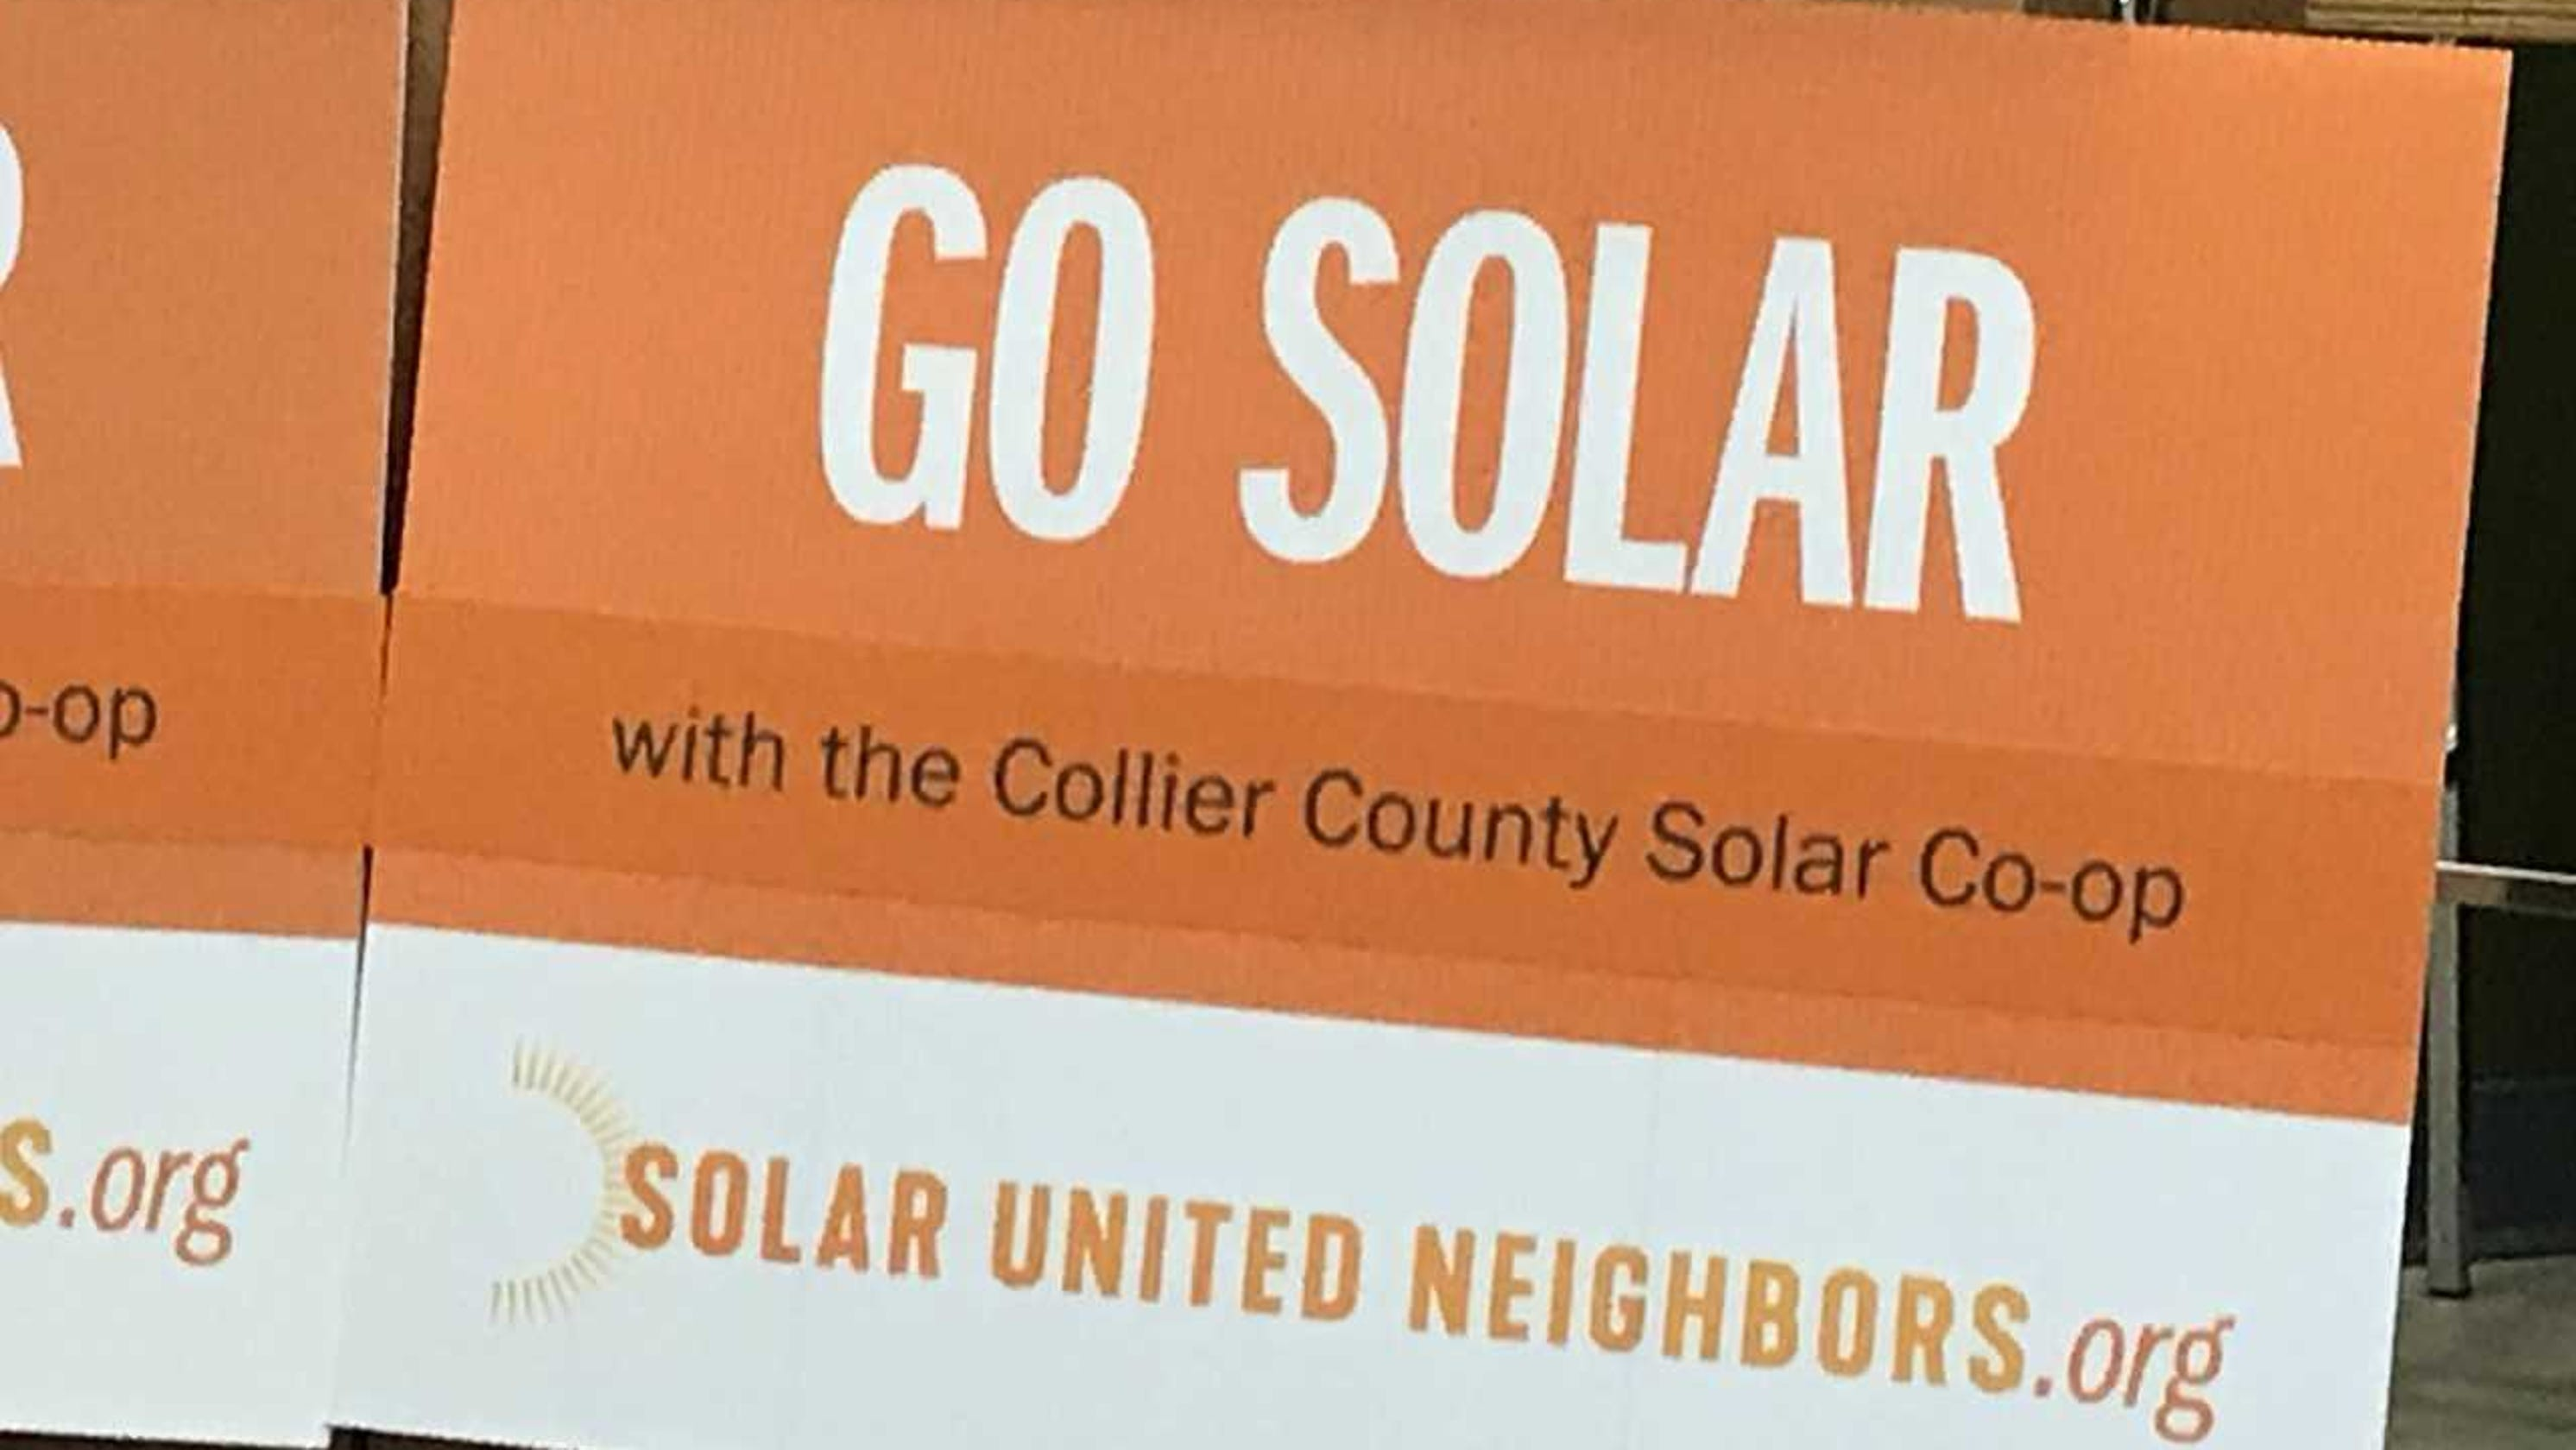 Solar Co-op launches in Collier County